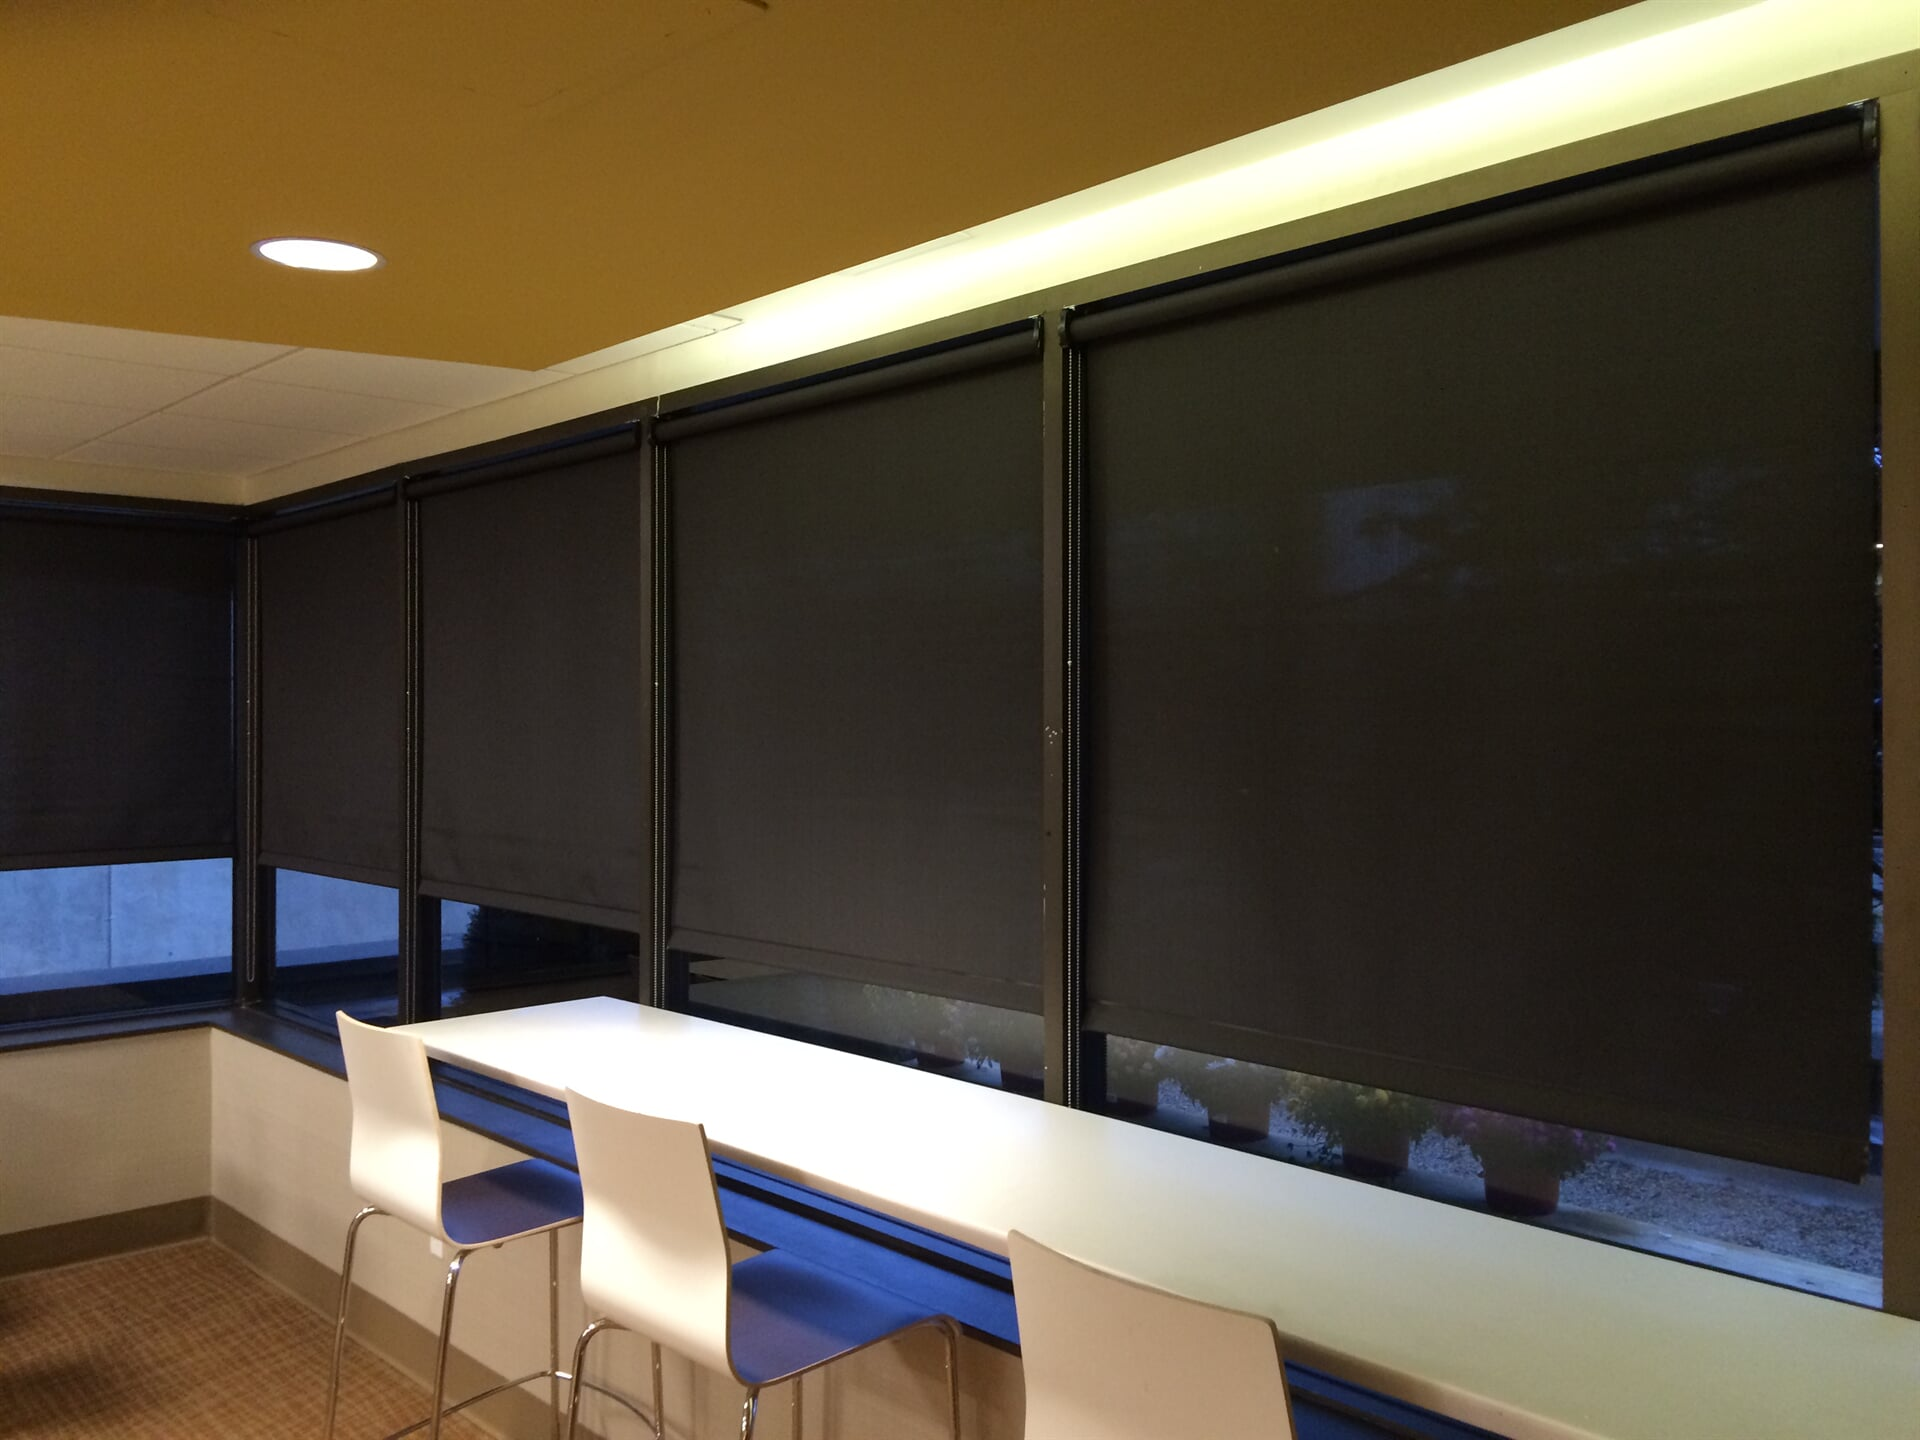 Window blinds in The Bronx, NY from White Plains Carpets, Floors & Blinds